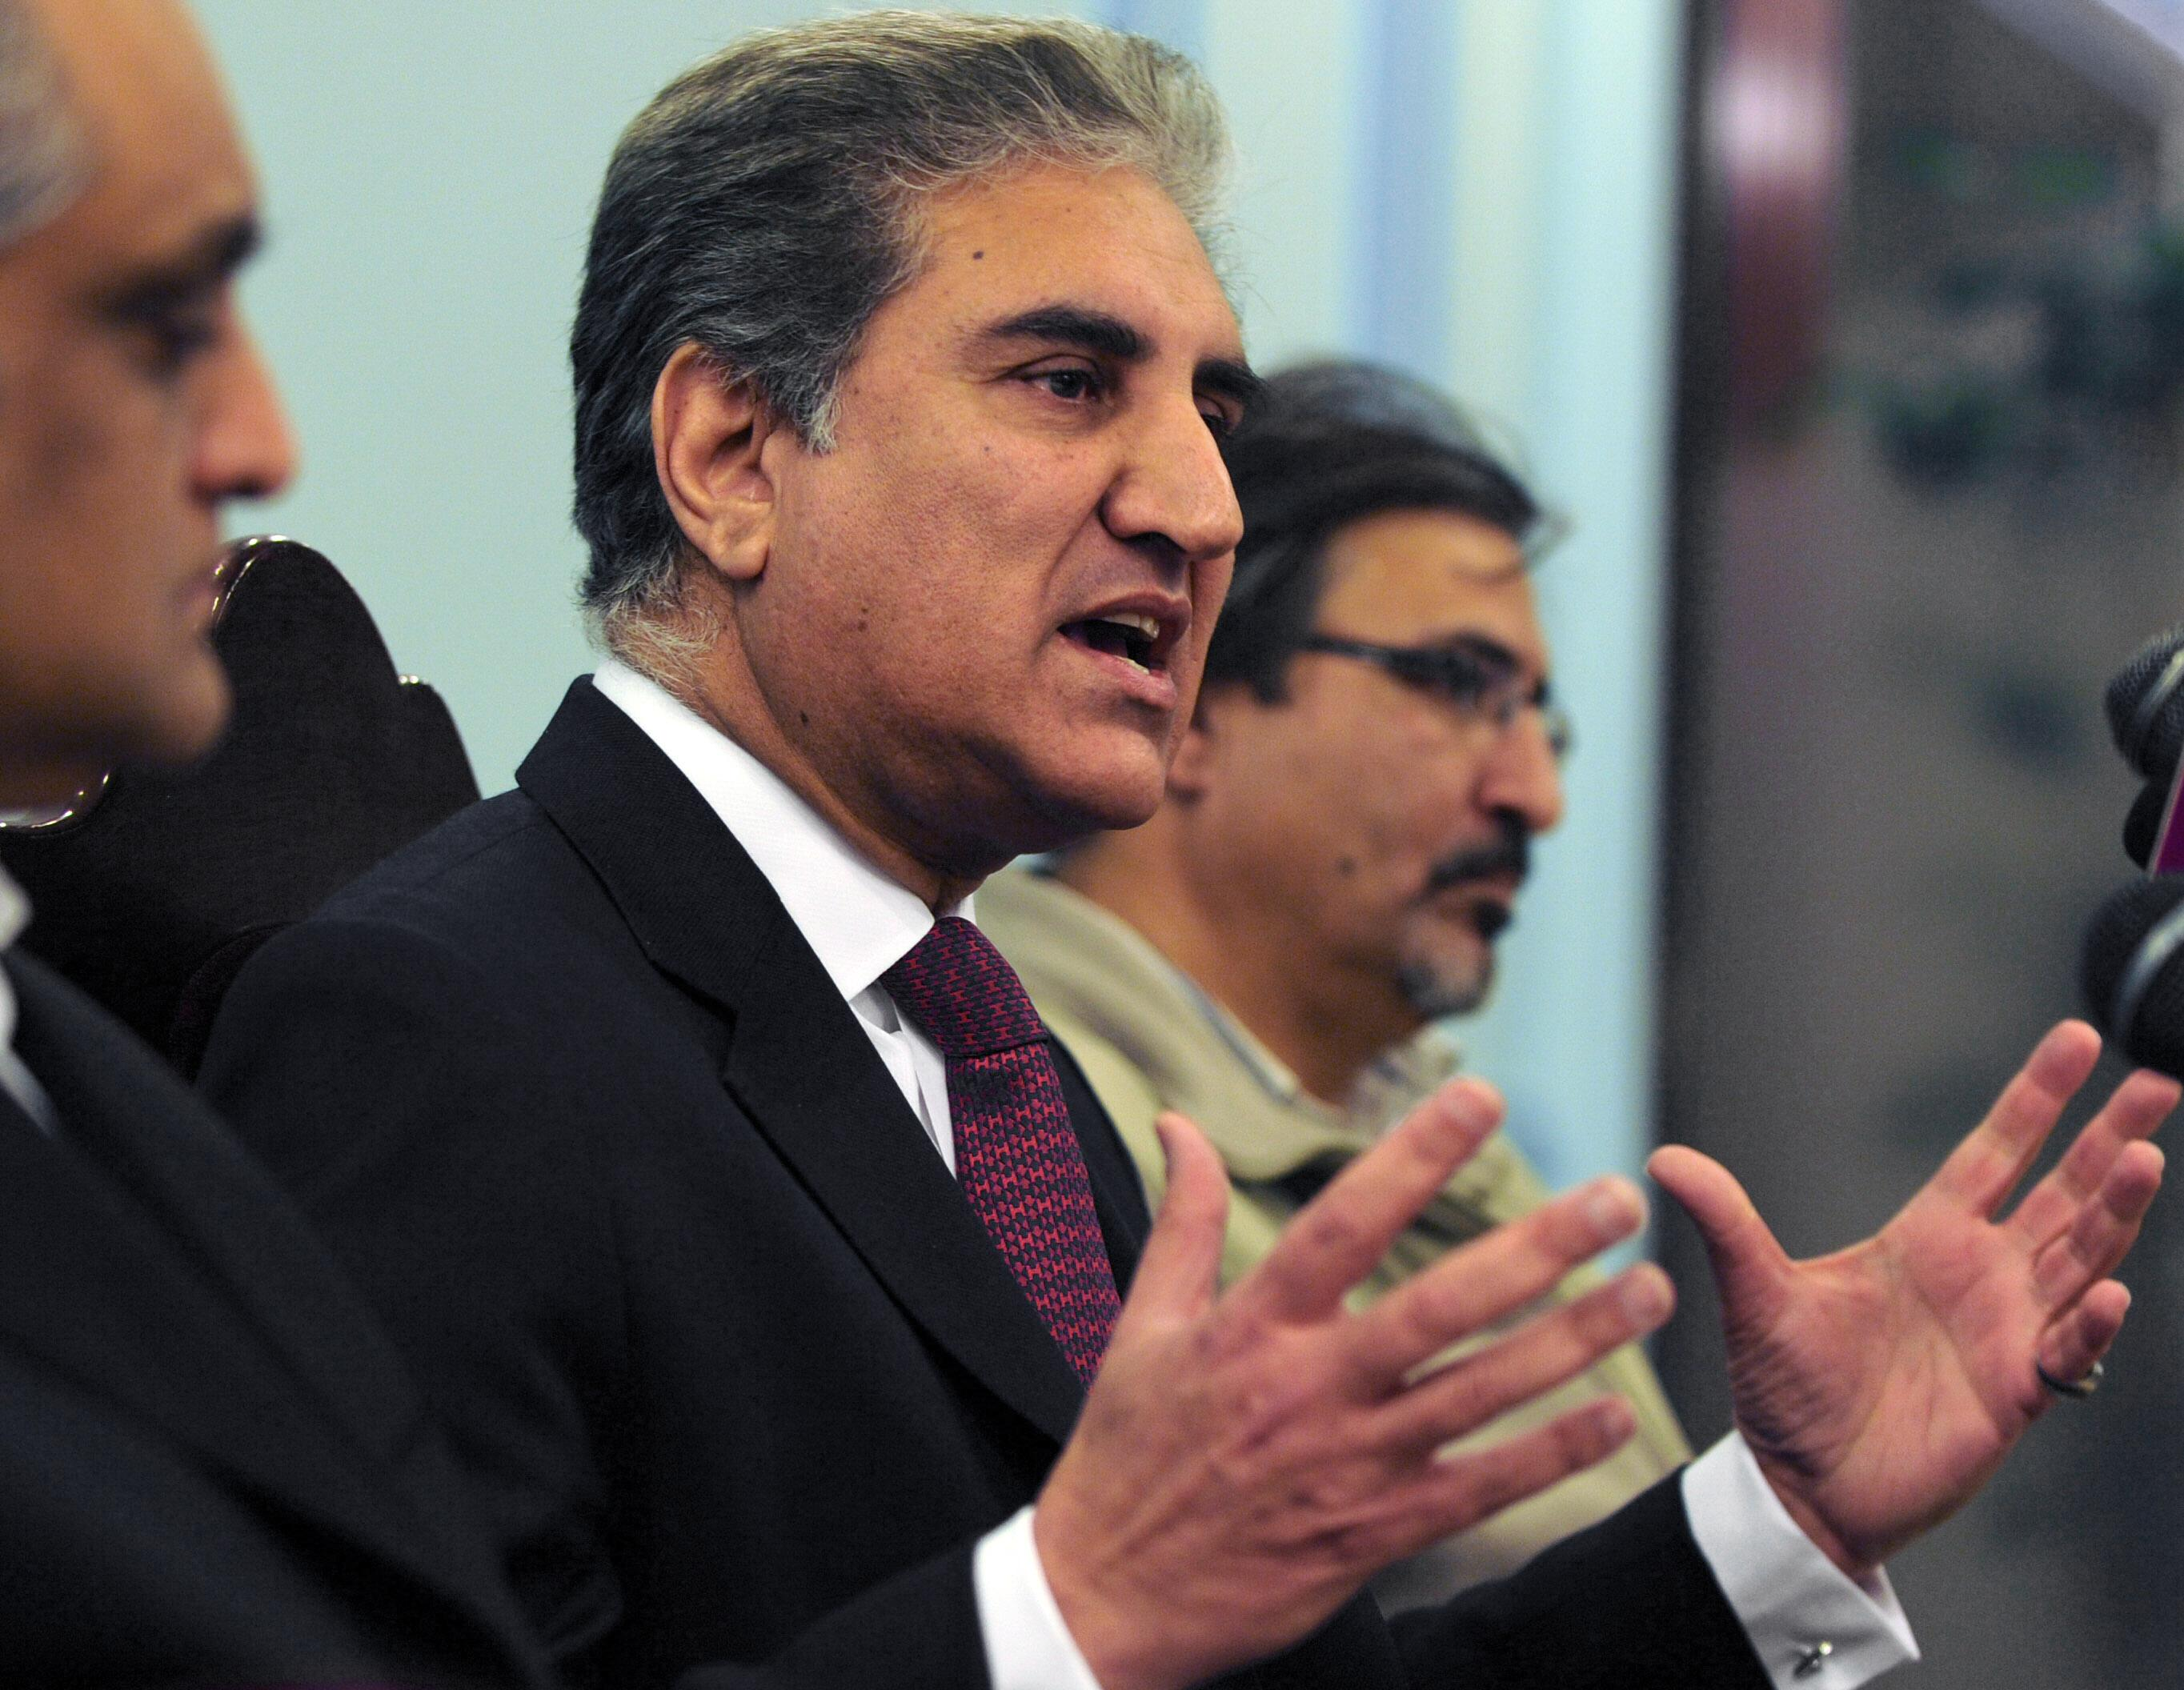 Foreign Minister Shah Mehmood Qureshi. PHOTO: AFP/FILE